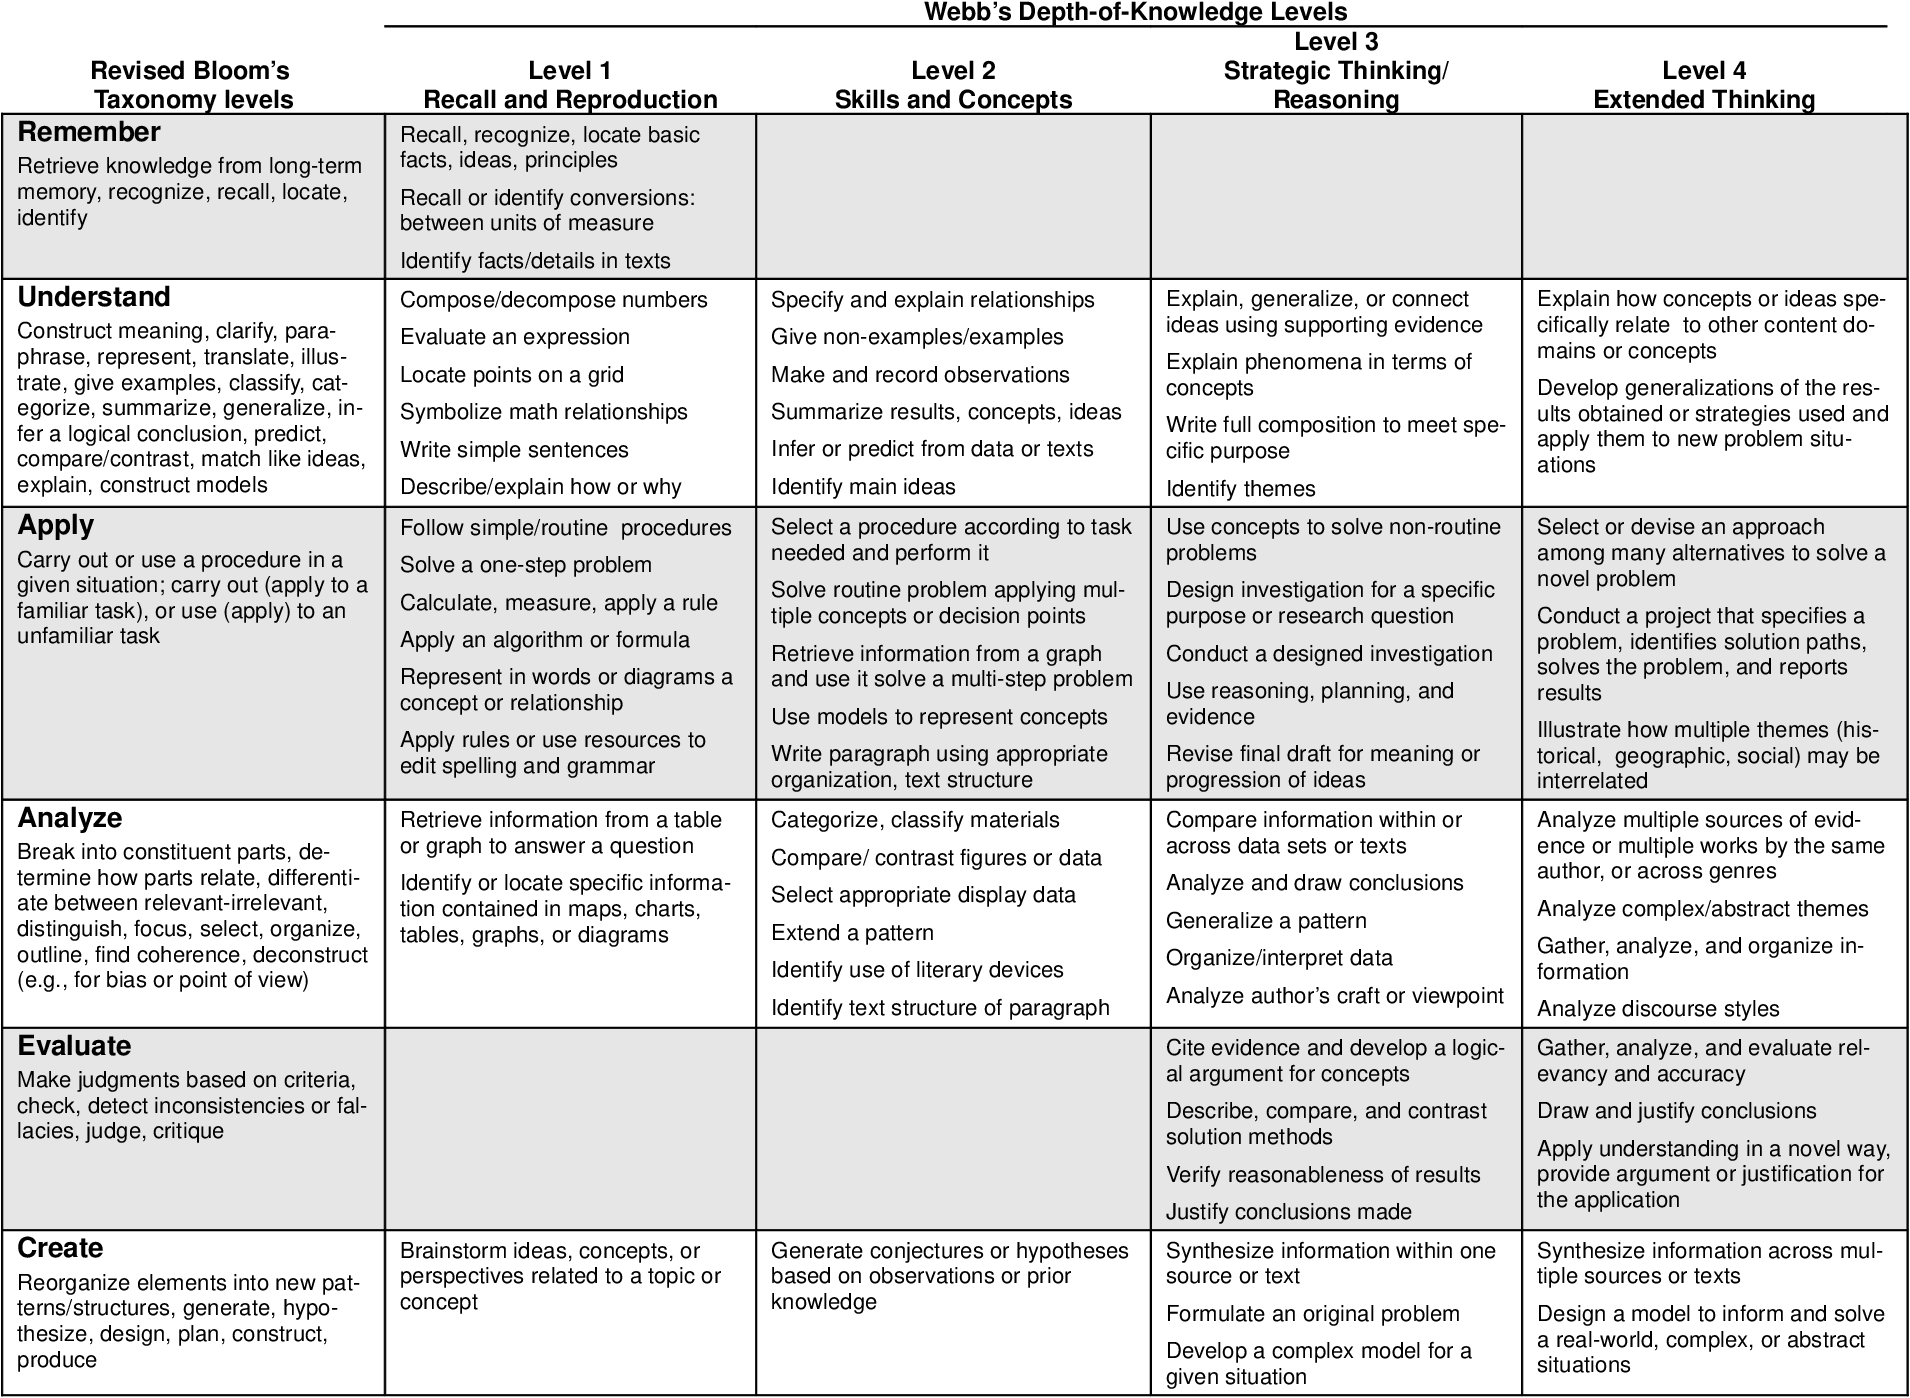 Having A Hard Time Focusing Research Identifies Complex Of >> Table 3 From Cognitive Rigor Blending The Strengths Of Bloom S